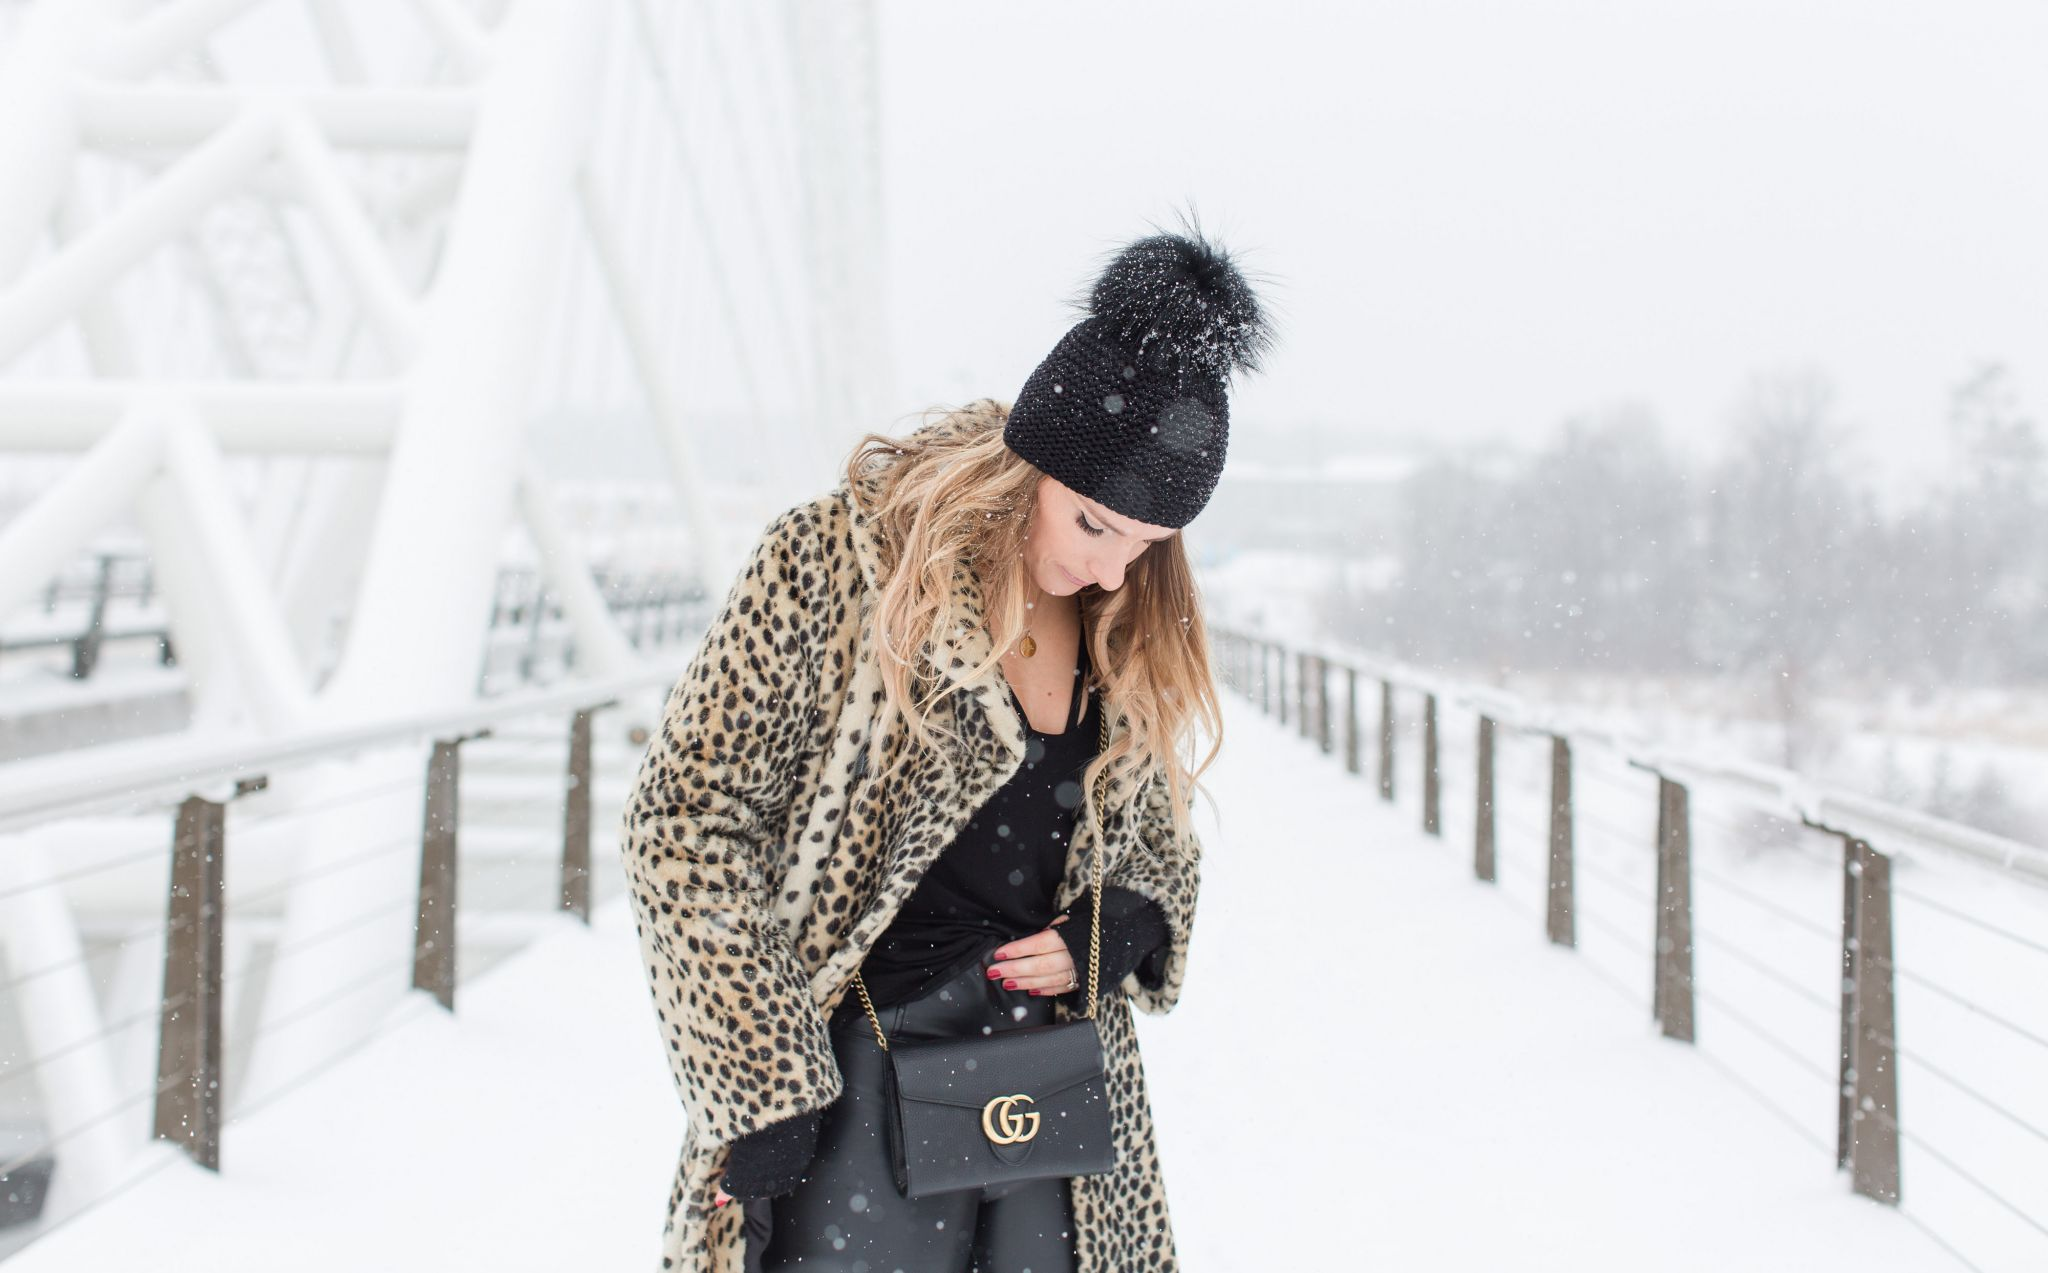 life with aco, leopard coat, winter outfit, gucci chain bag